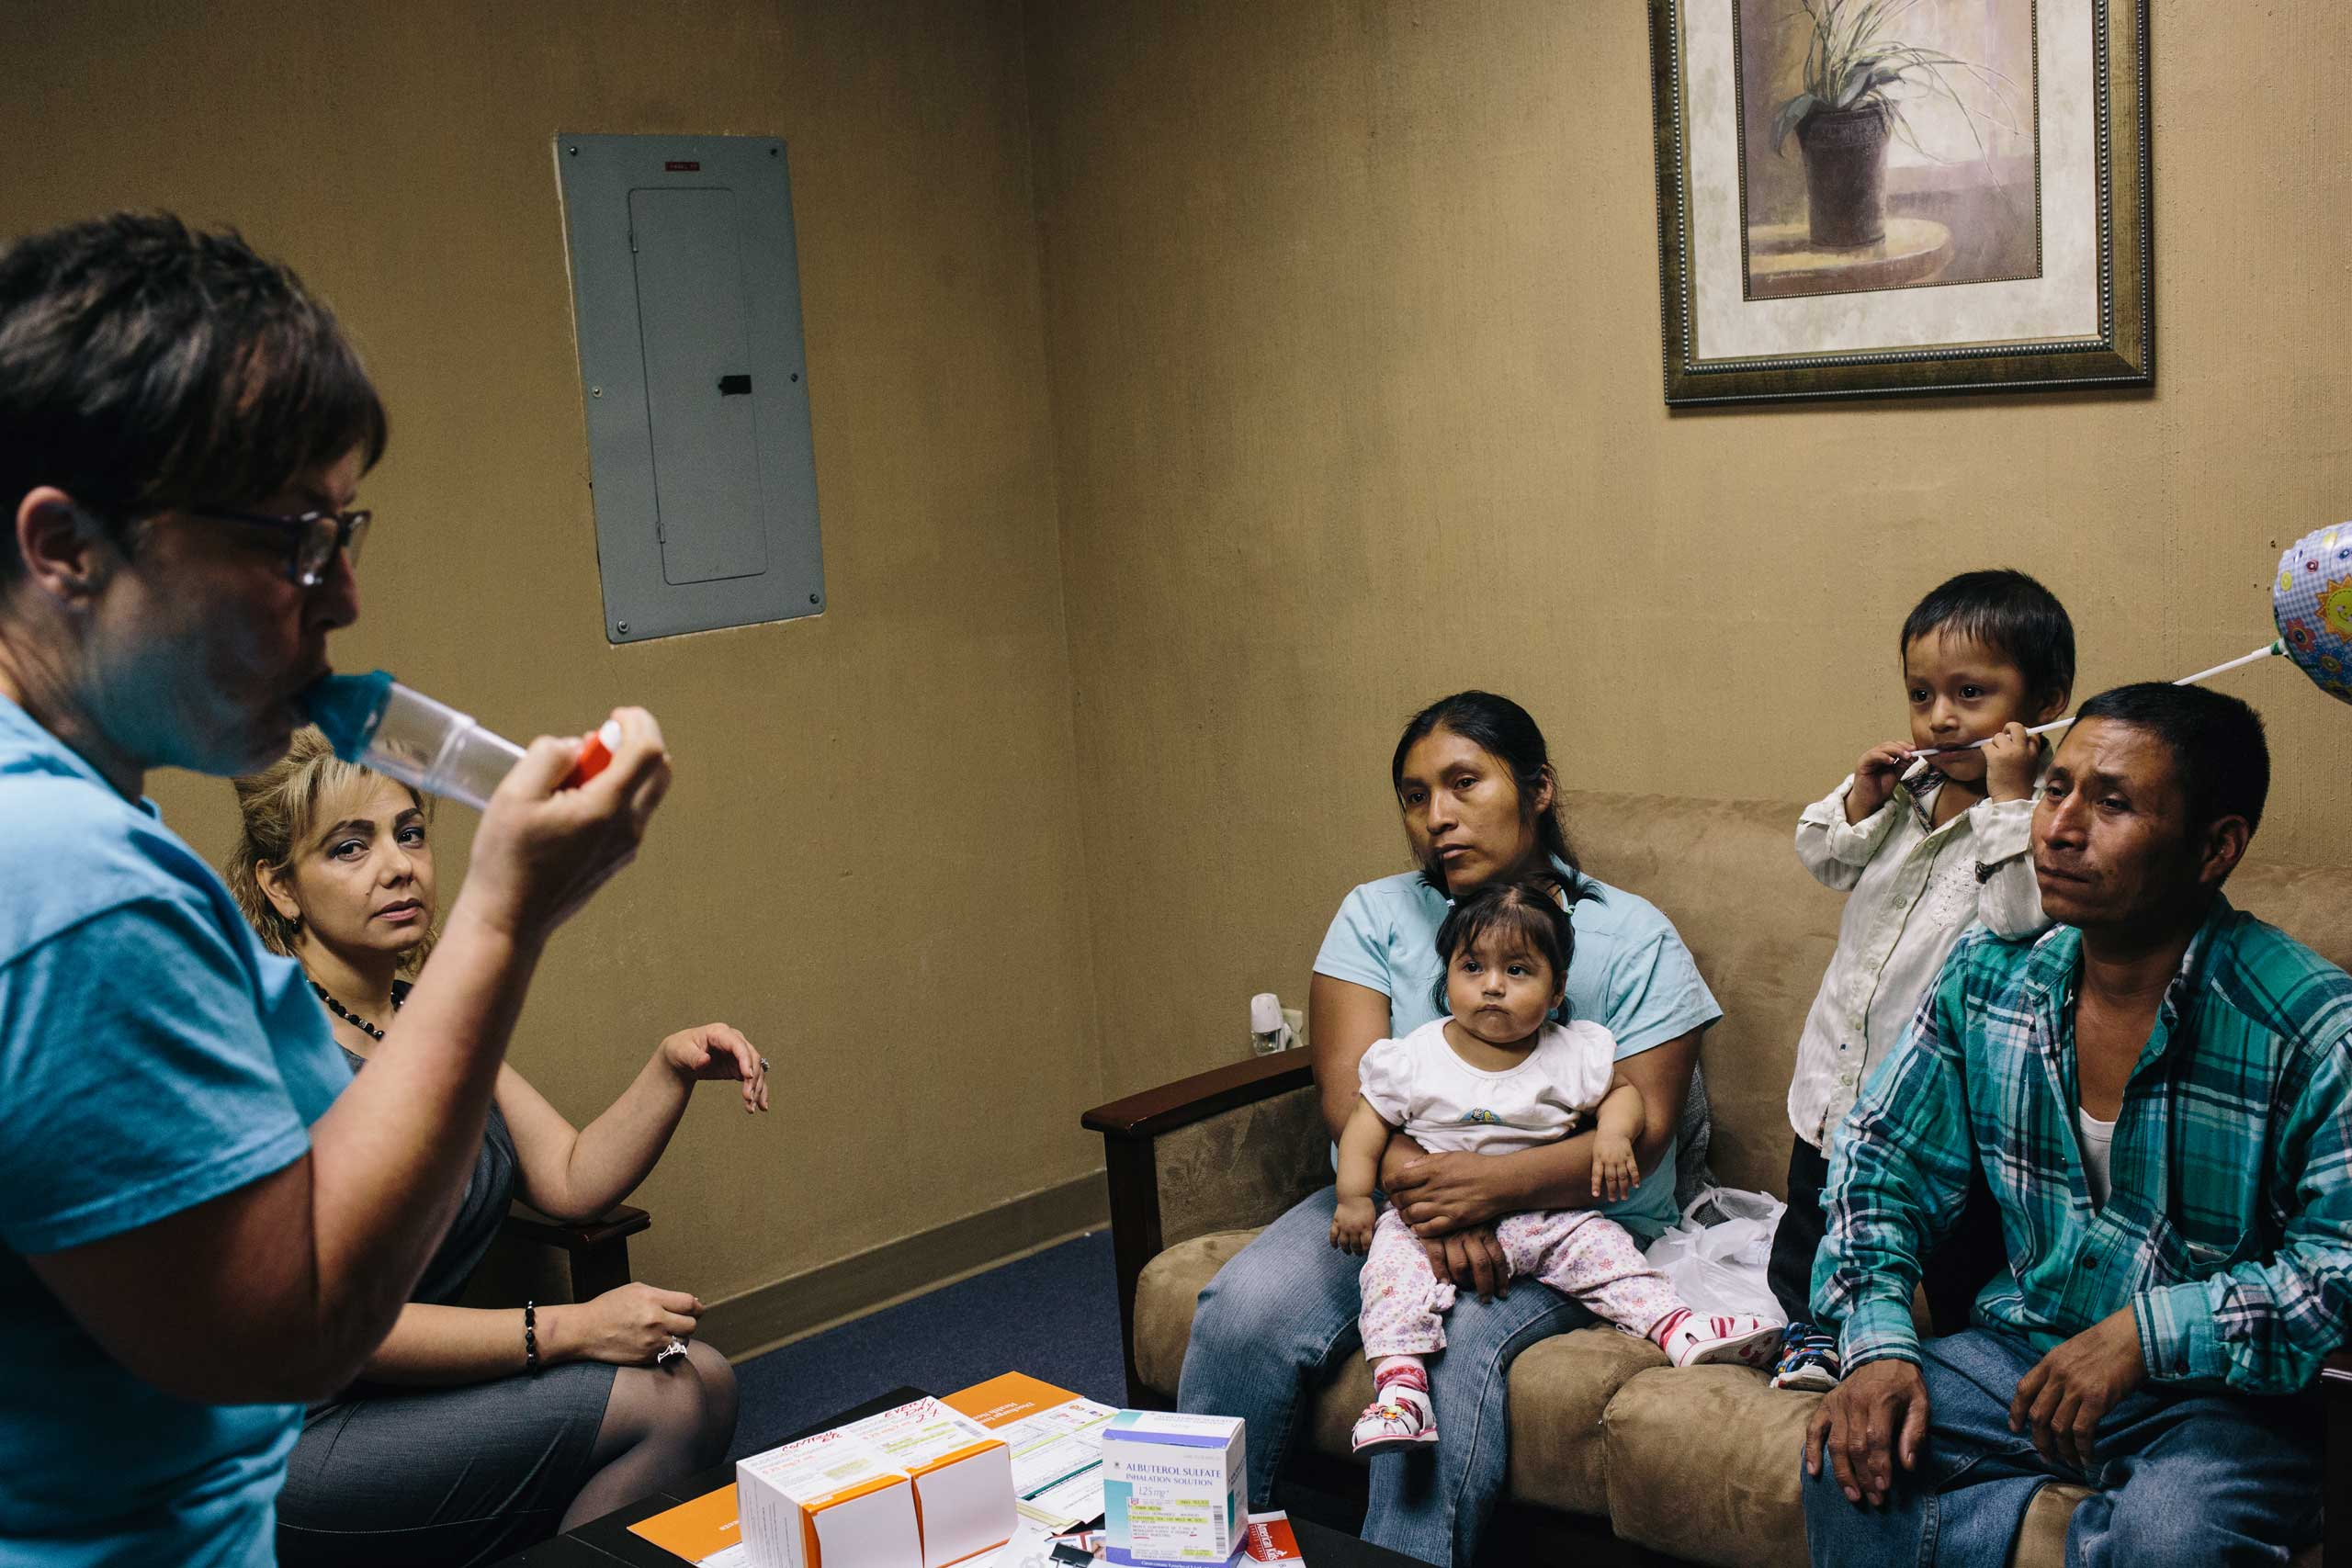 Asthma educator Sharon Borradori, left, shows Margarita Hernandez, center, and her husband, Severo Velasco, right, how their 2-year-old son, Mauricio Velasco will use an inhaler when he's older. Mauricio was recently released from the hospital after suffering from an extreme asthma attack.